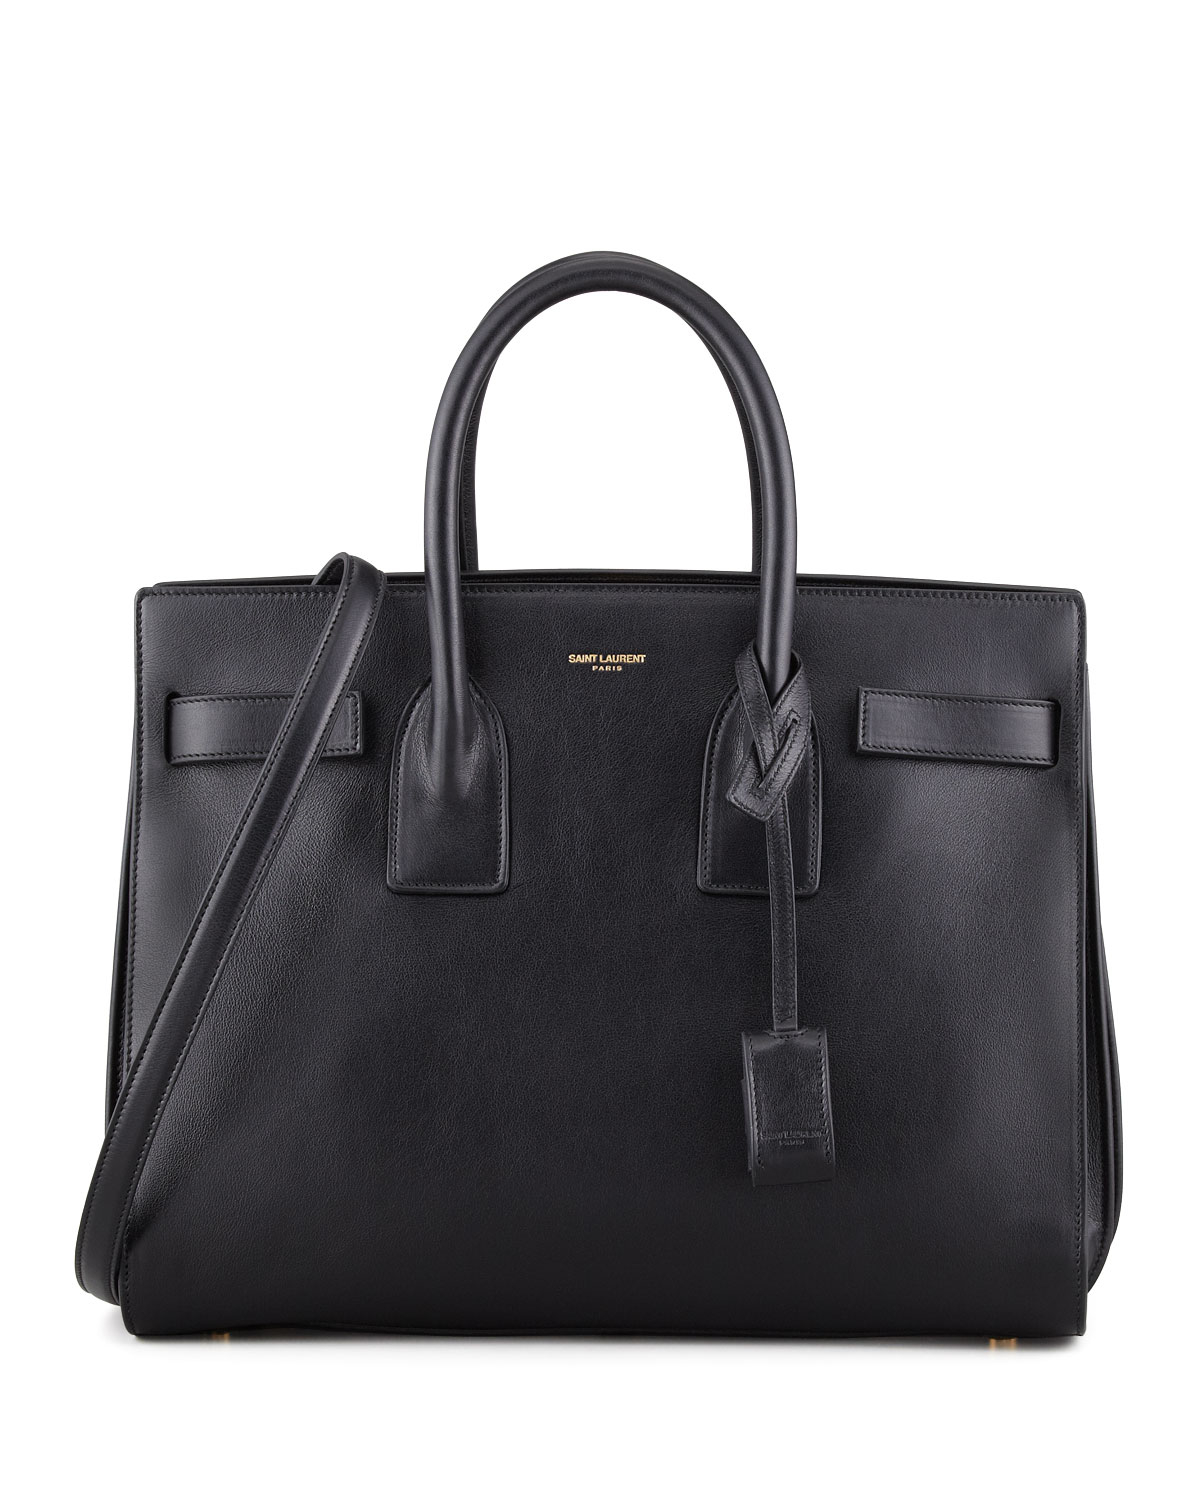 Saint laurent Sac De Jour Satchel Bag in Black